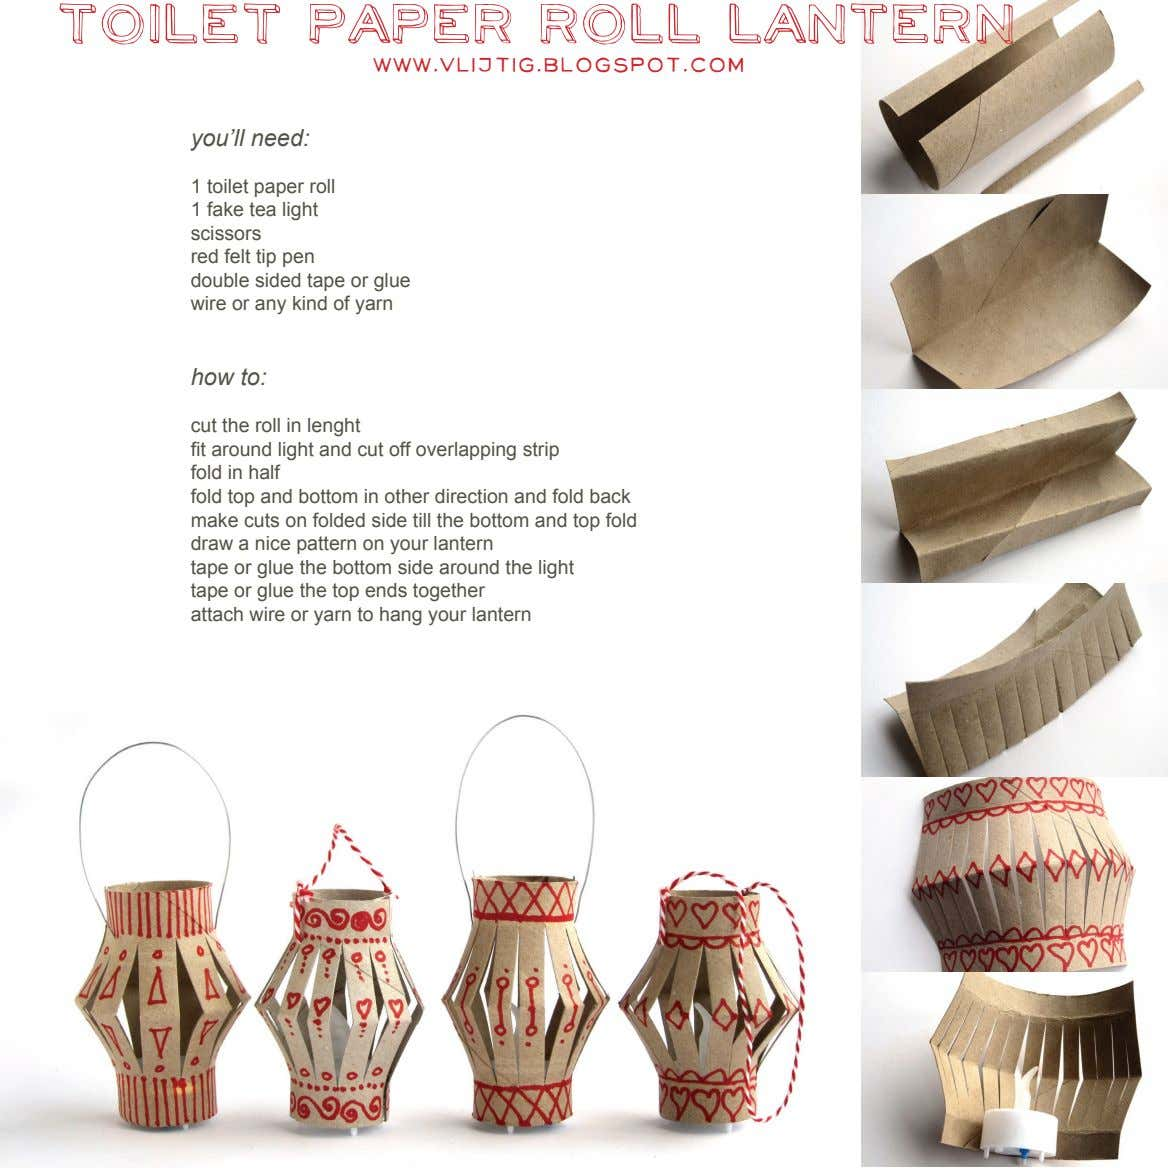 toilet paper roll lantern www.vlijtig.blogspot.com you'll need: 1 toilet paper roll 1 fake tea light